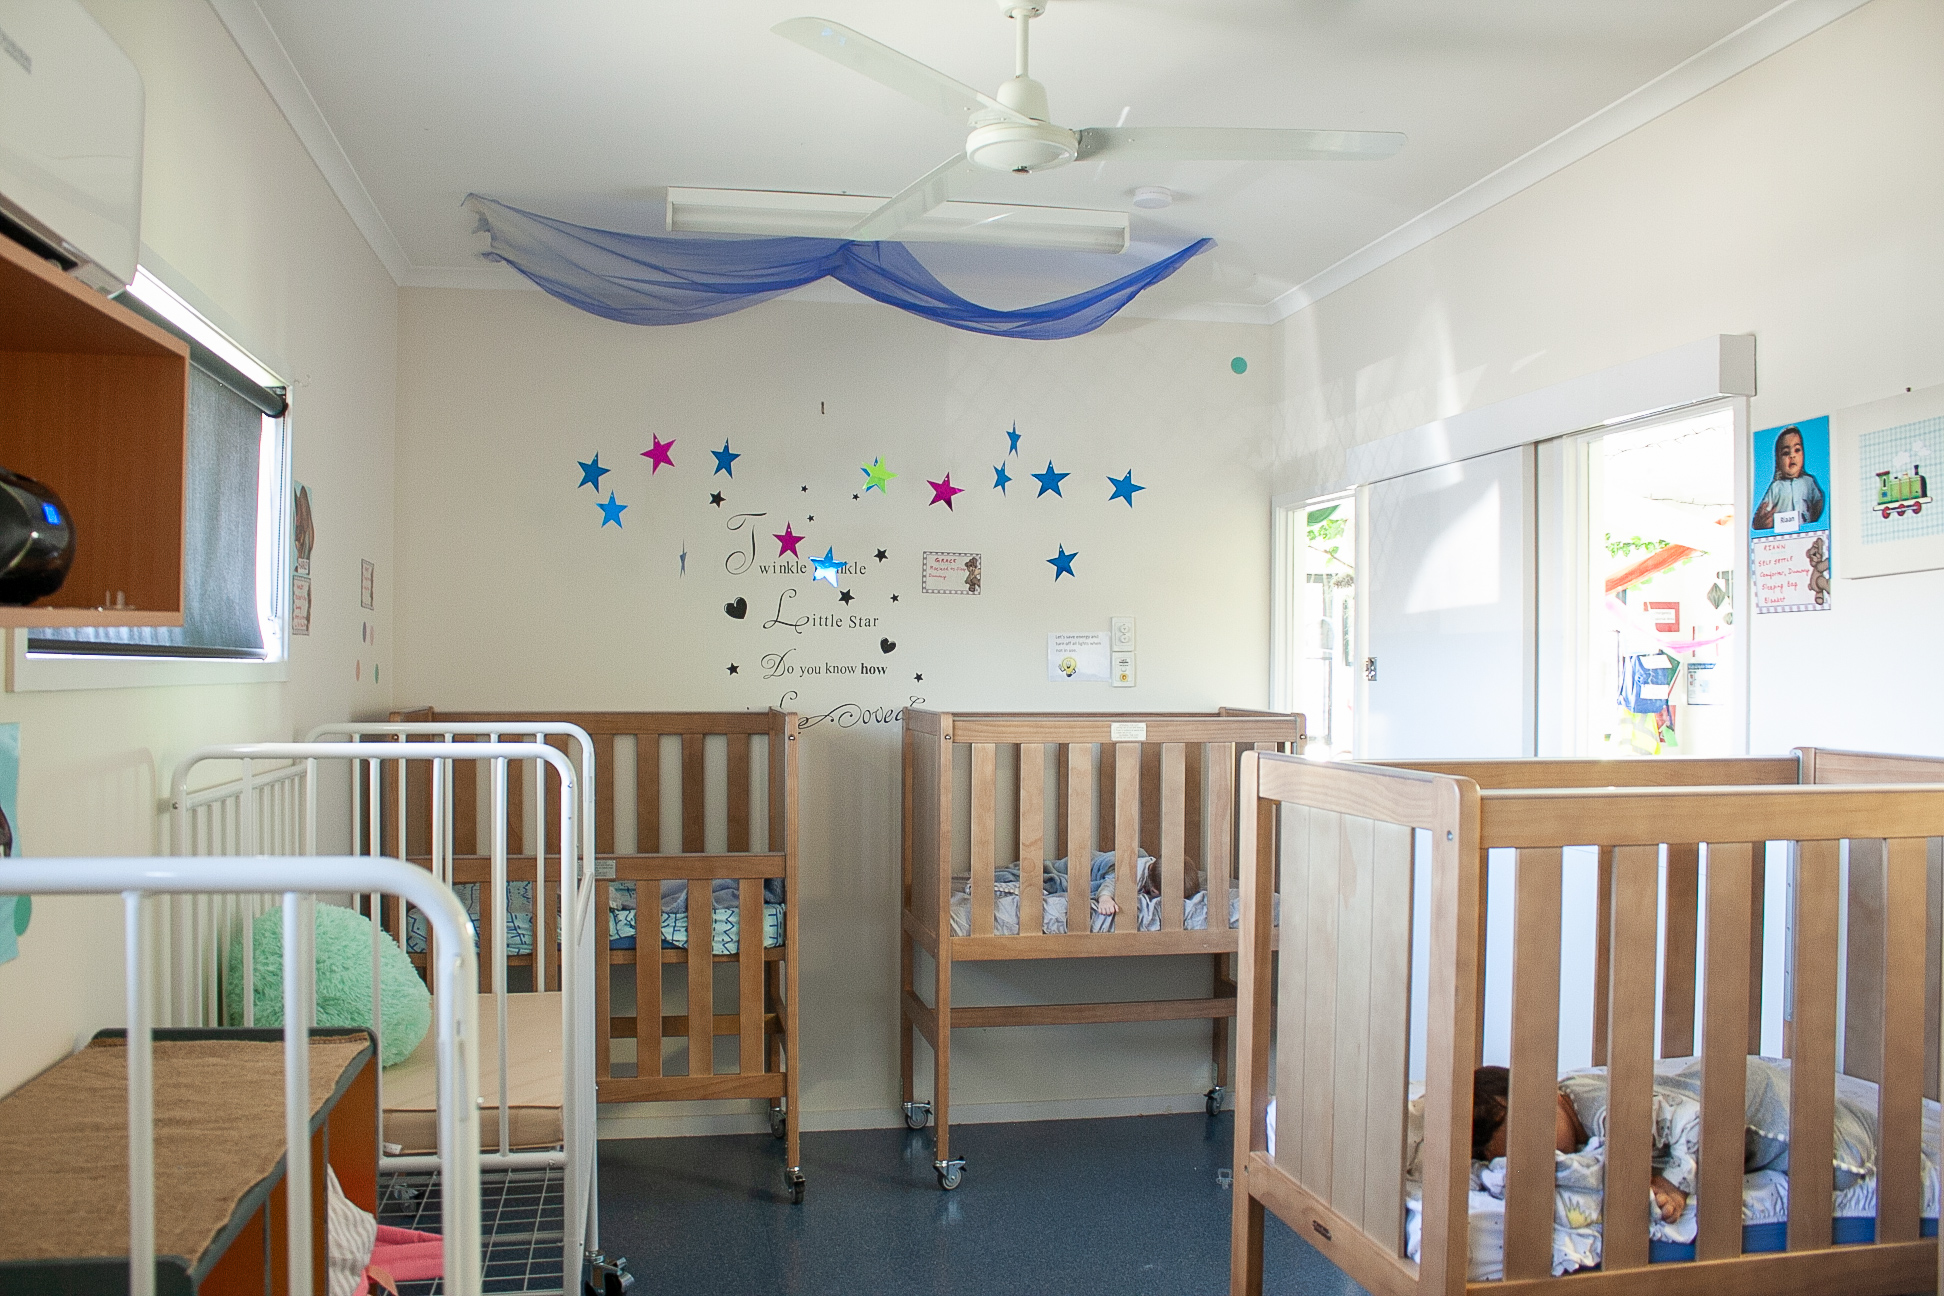 A nursery room with 6 baby cots in view